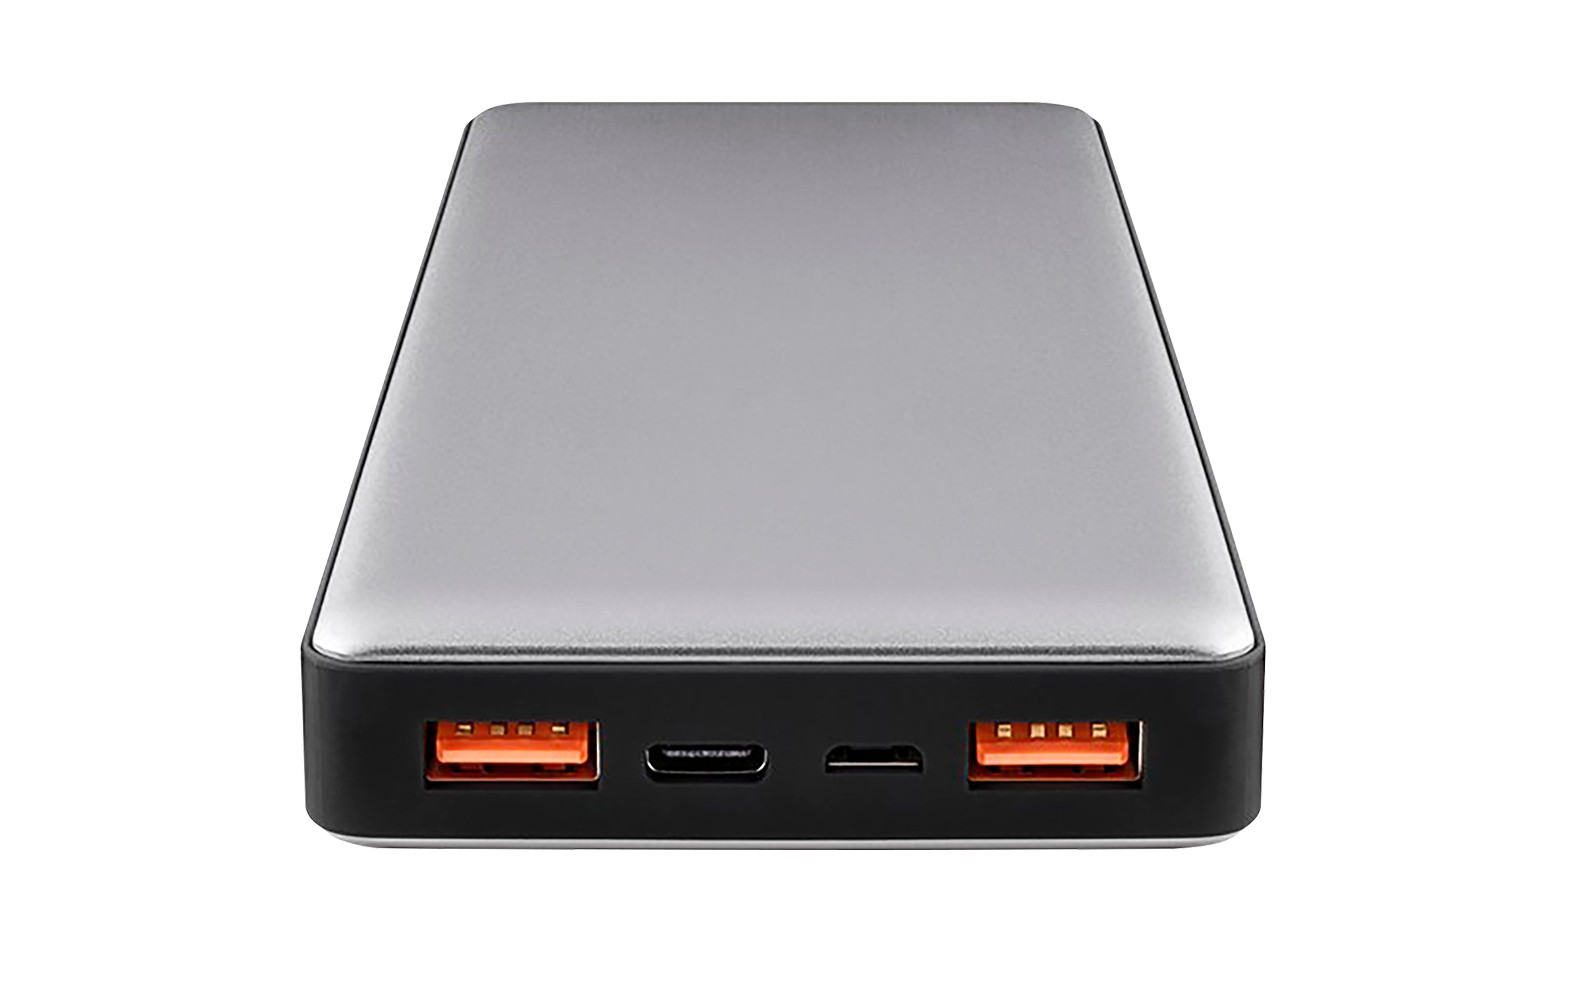 Goobay 15000mAh Power Bank with Quick Charge USB/USB-C